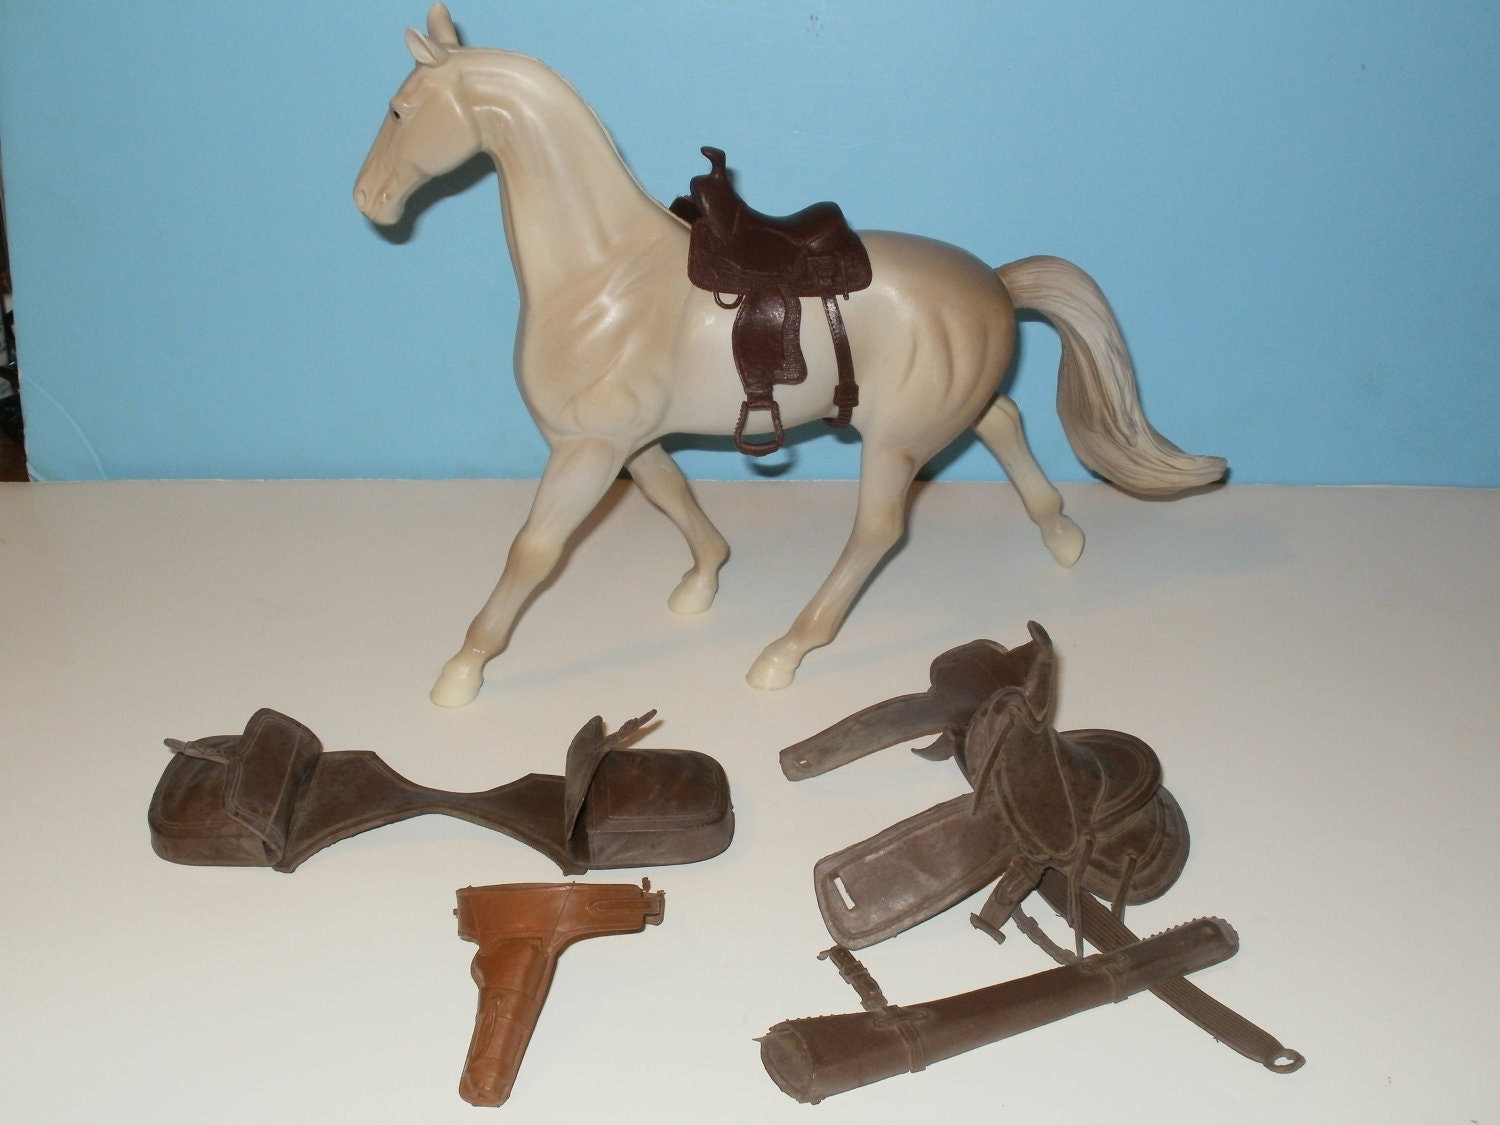 Vintage 1960s toy saddles saddle bags and by kennyscrafts on etsy